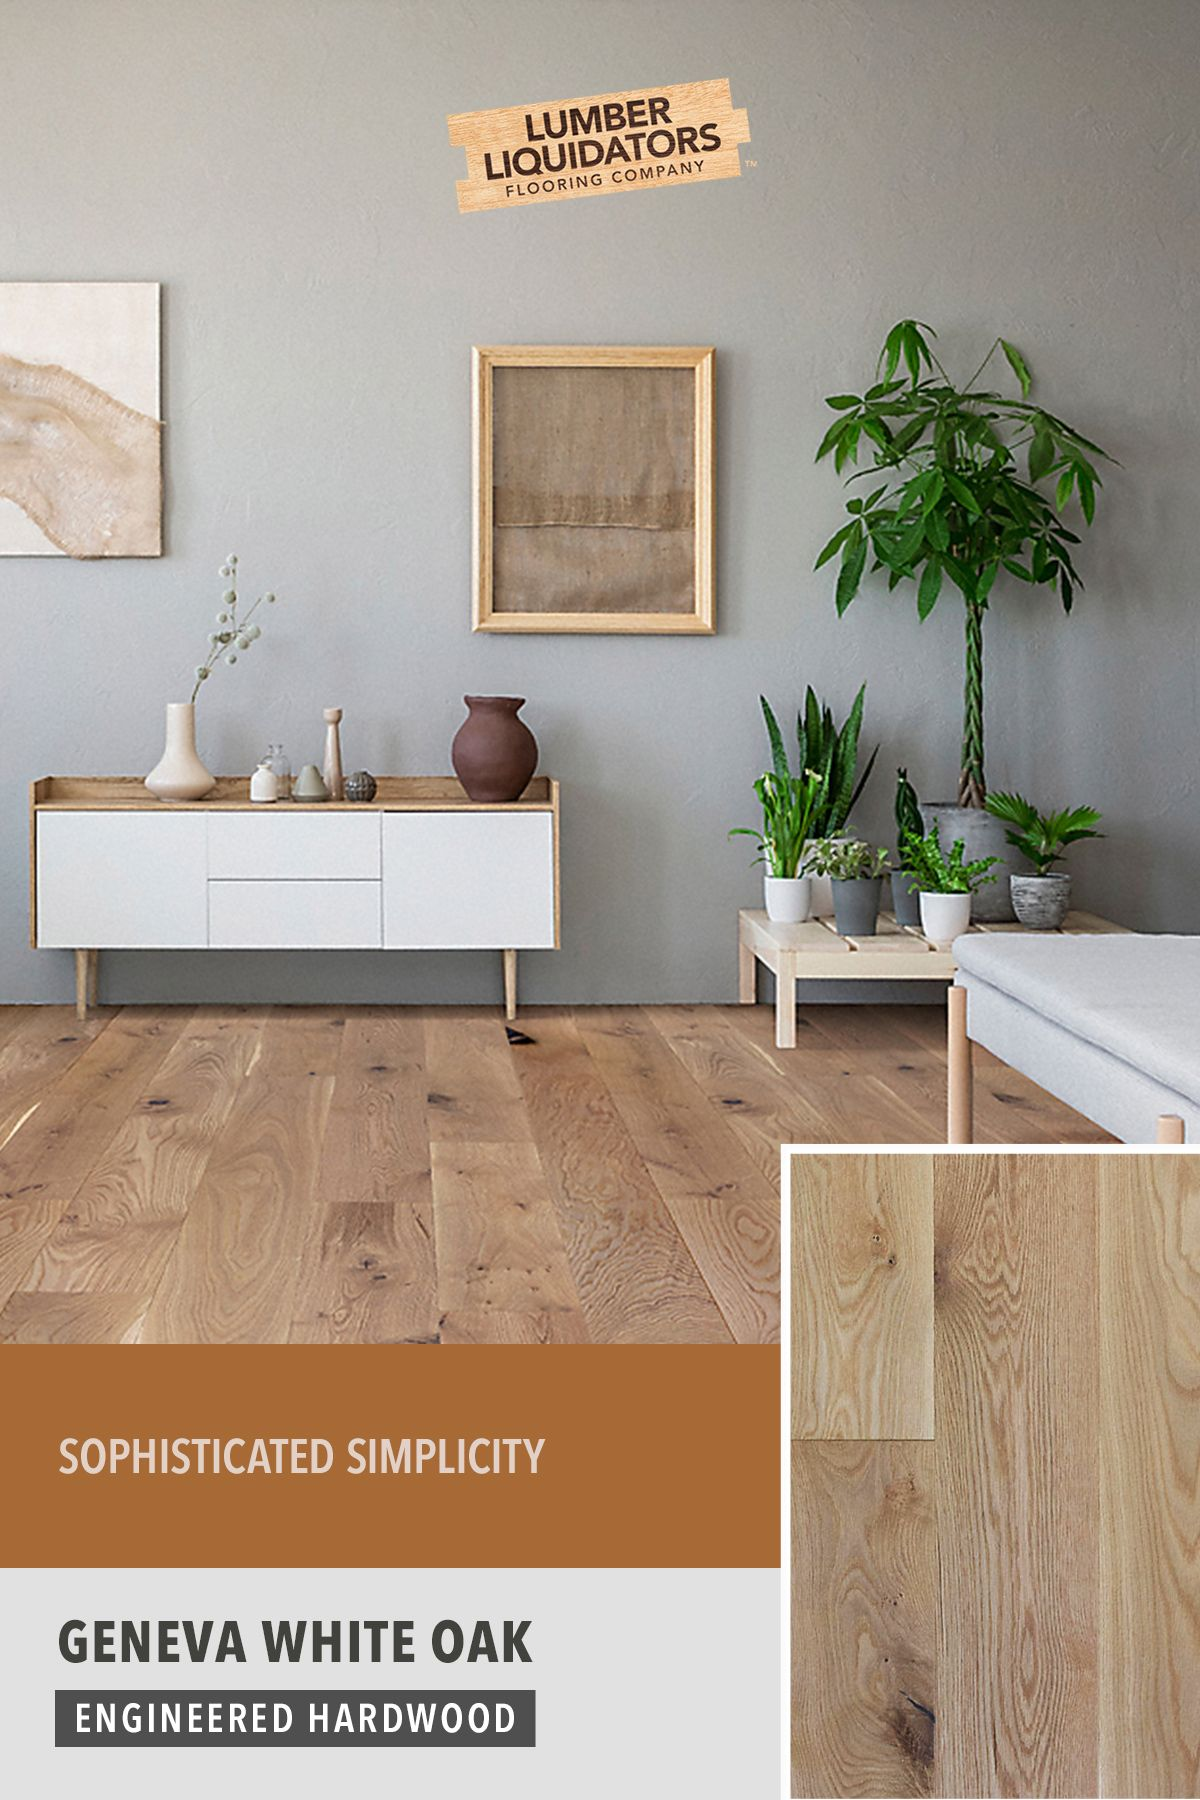 Lumber Liquidators Understands That Sophistication Doesn T Have To Be Complicated Add In 2020 Oak Engineered Hardwood Engineered Hardwood Flooring Engineered Hardwood